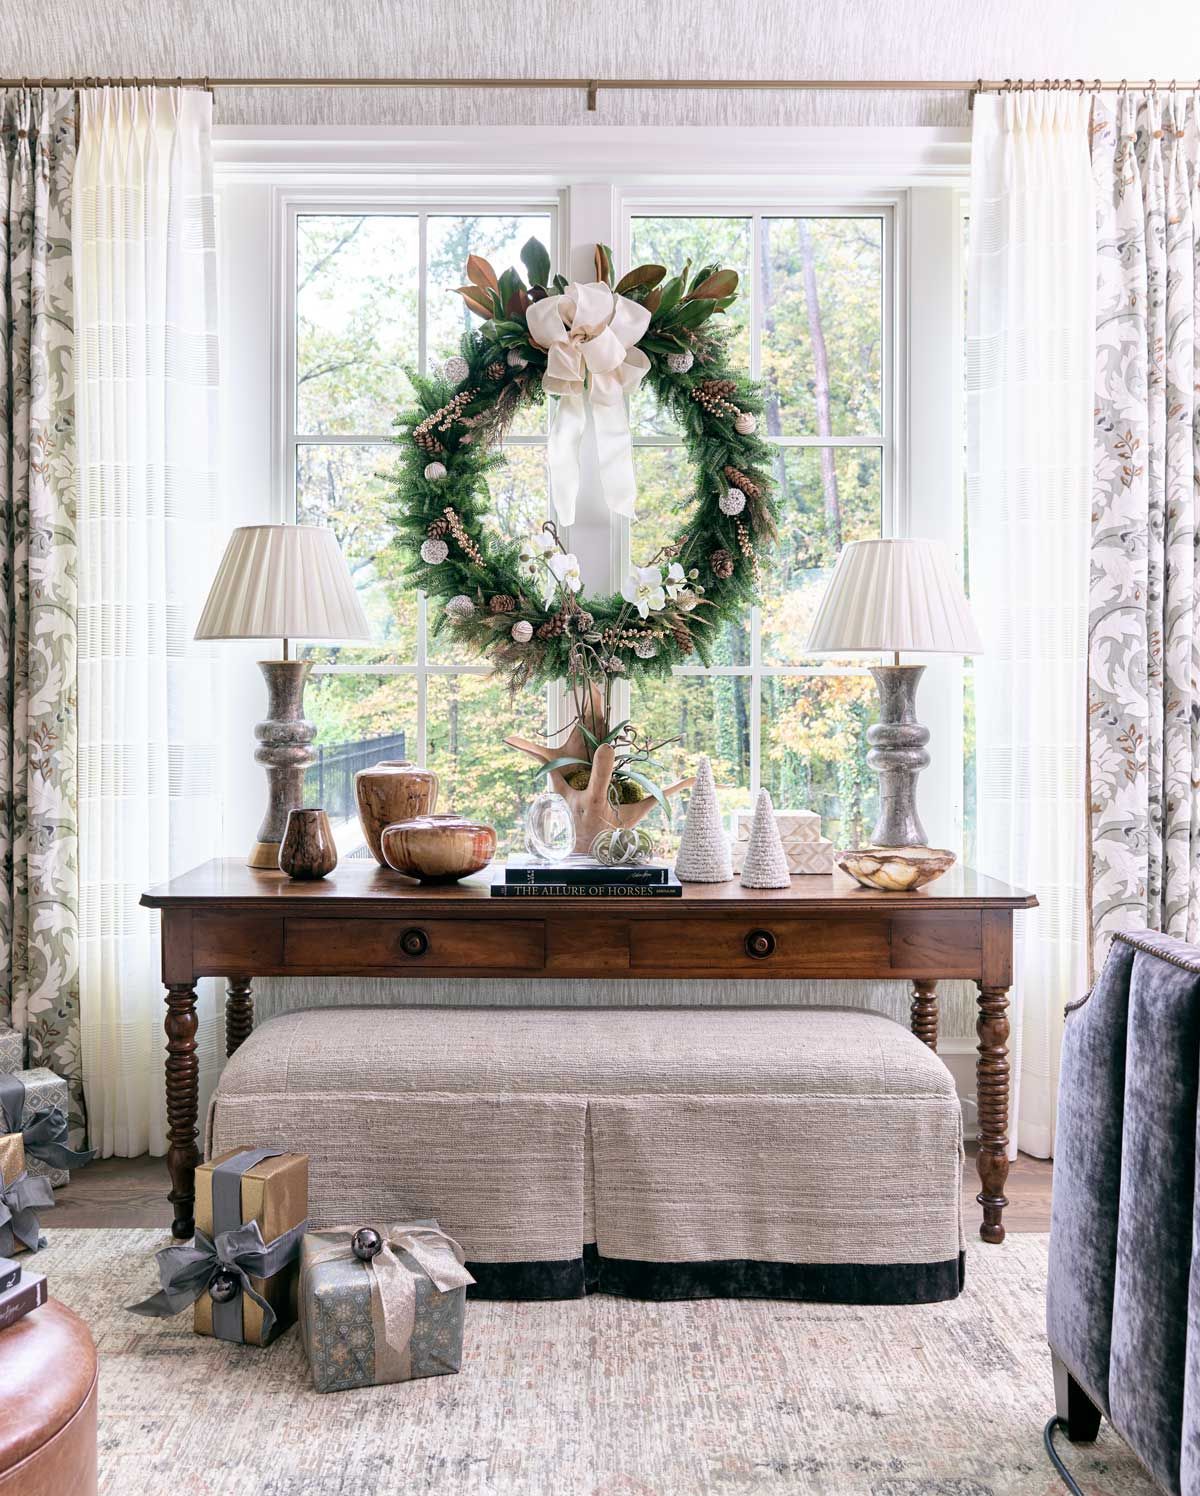 Atlanta Homes Lifestyles Home For The Holidays Showhouse With Traditional Christmas Decor By Jessica Bradley On Thou Swell Thouswellblog